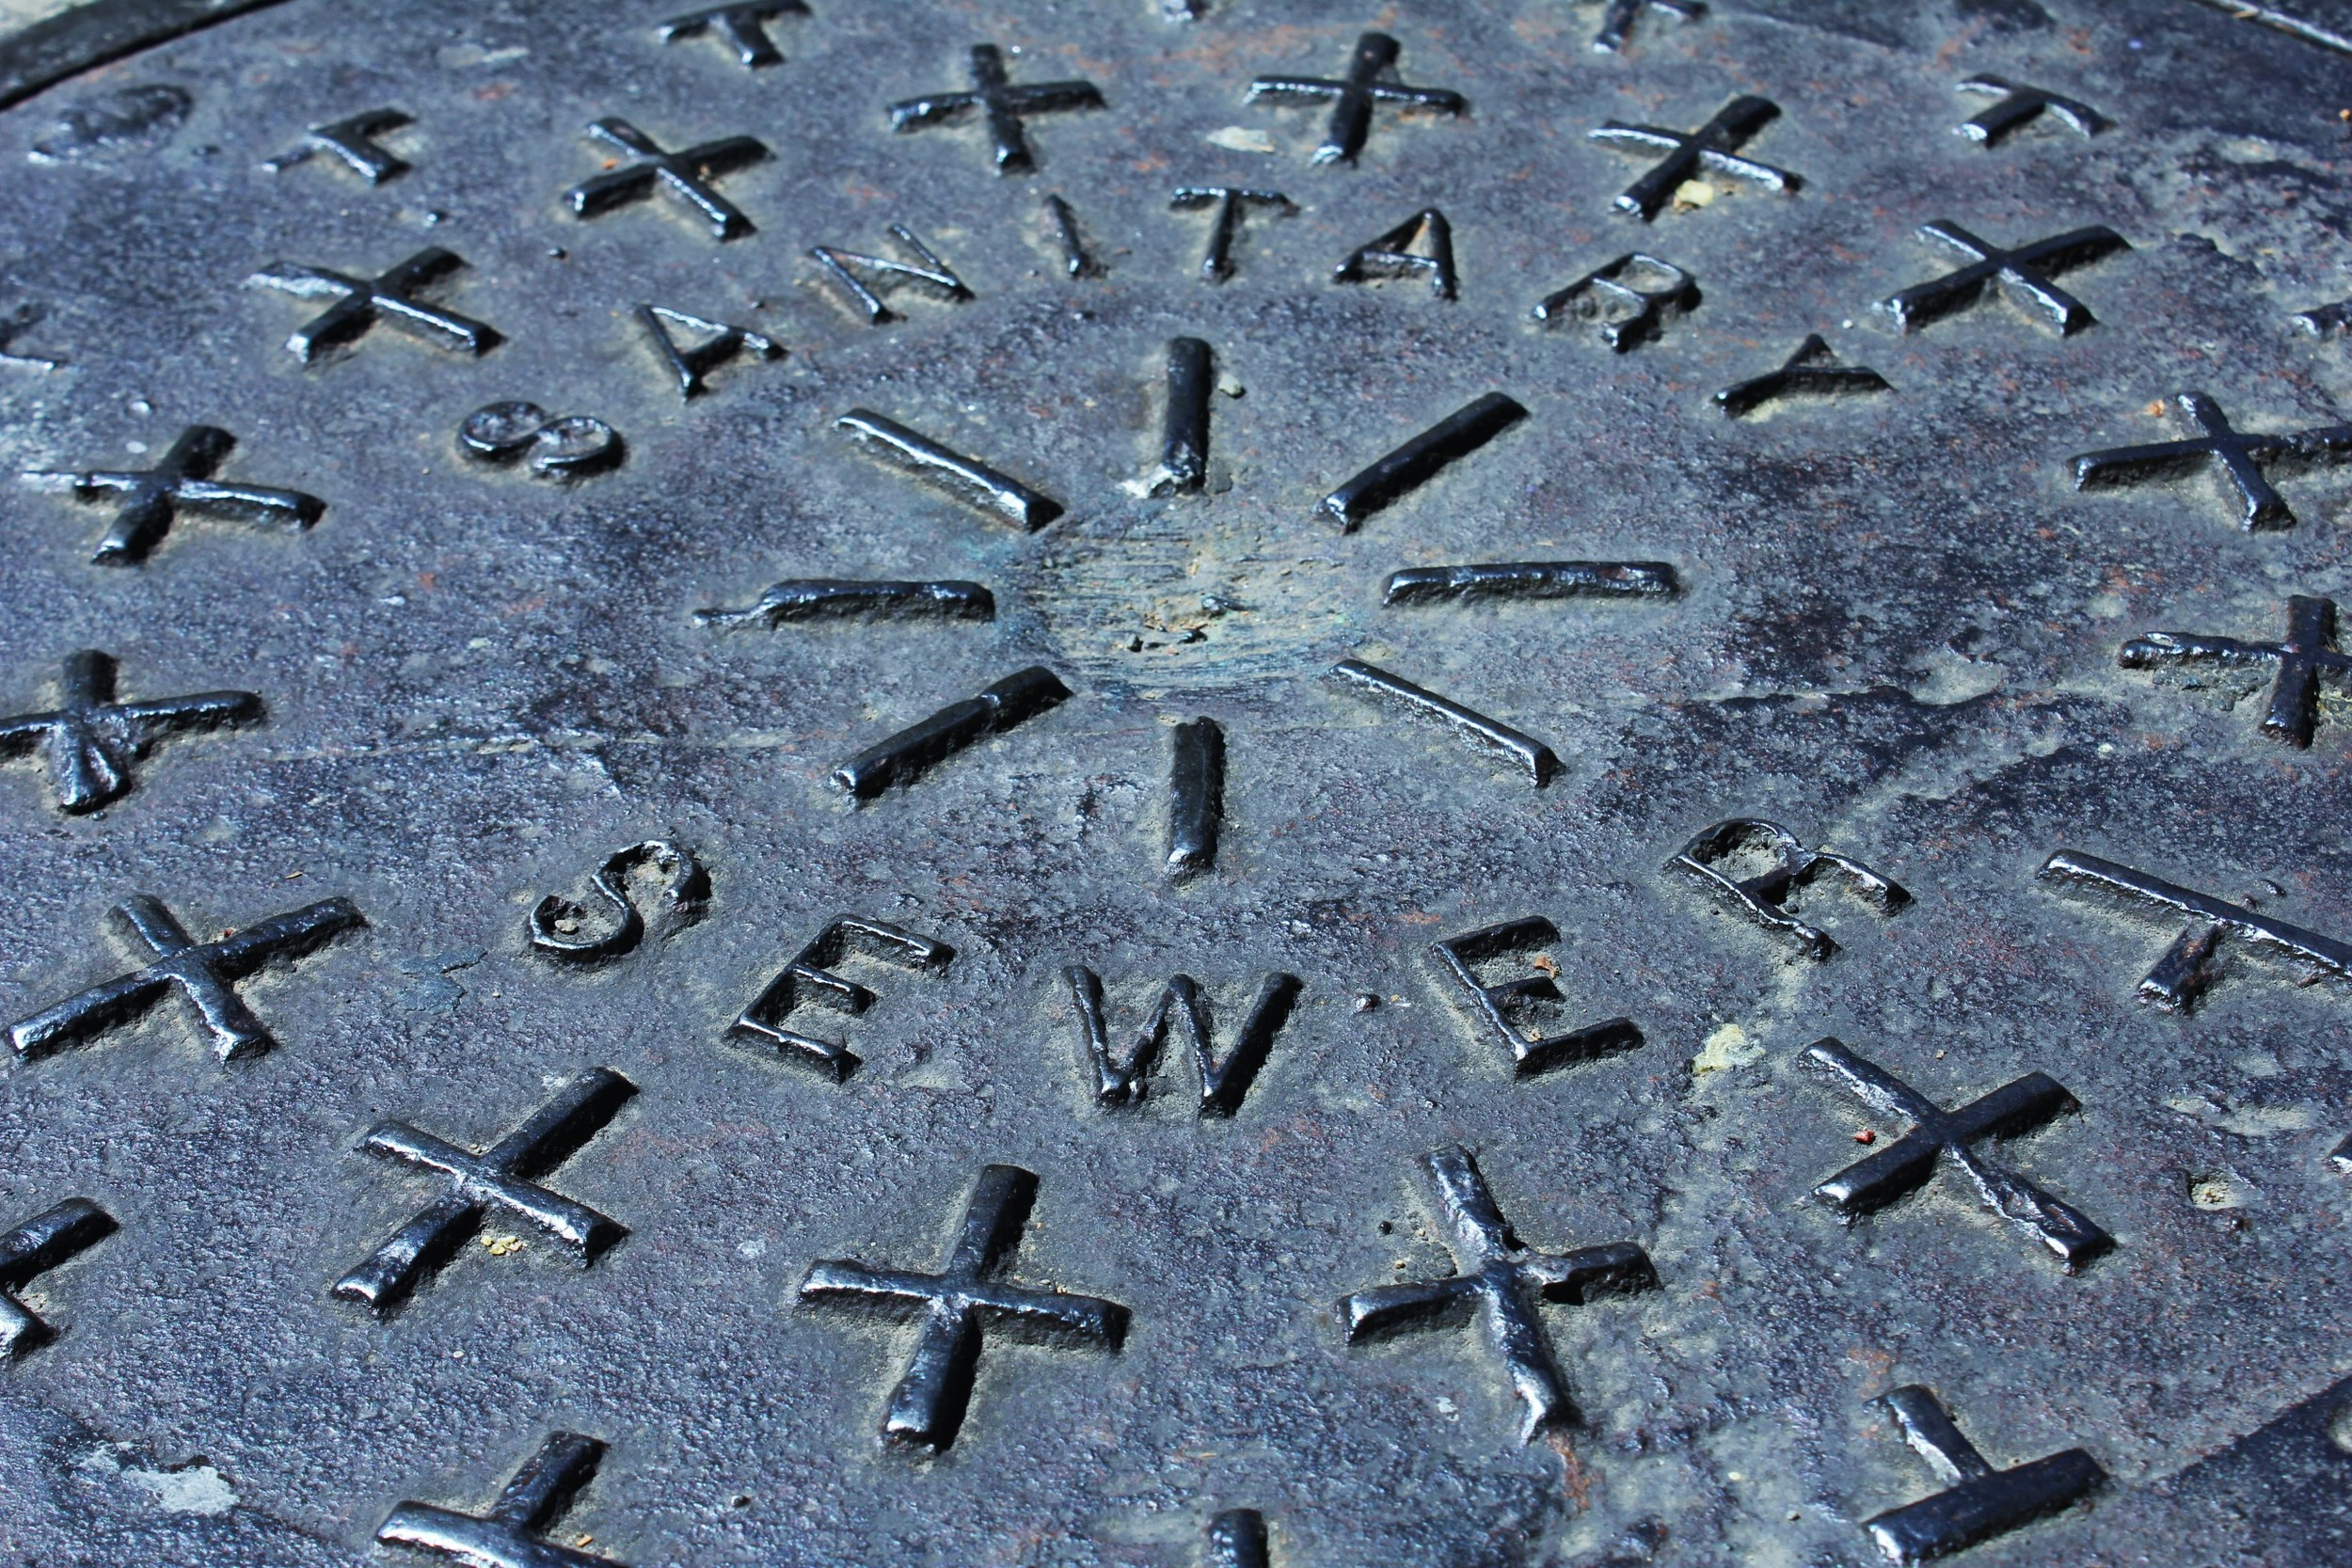 SEWER INFRASTRUCTURE   Less construction conflicts, less O&M problems